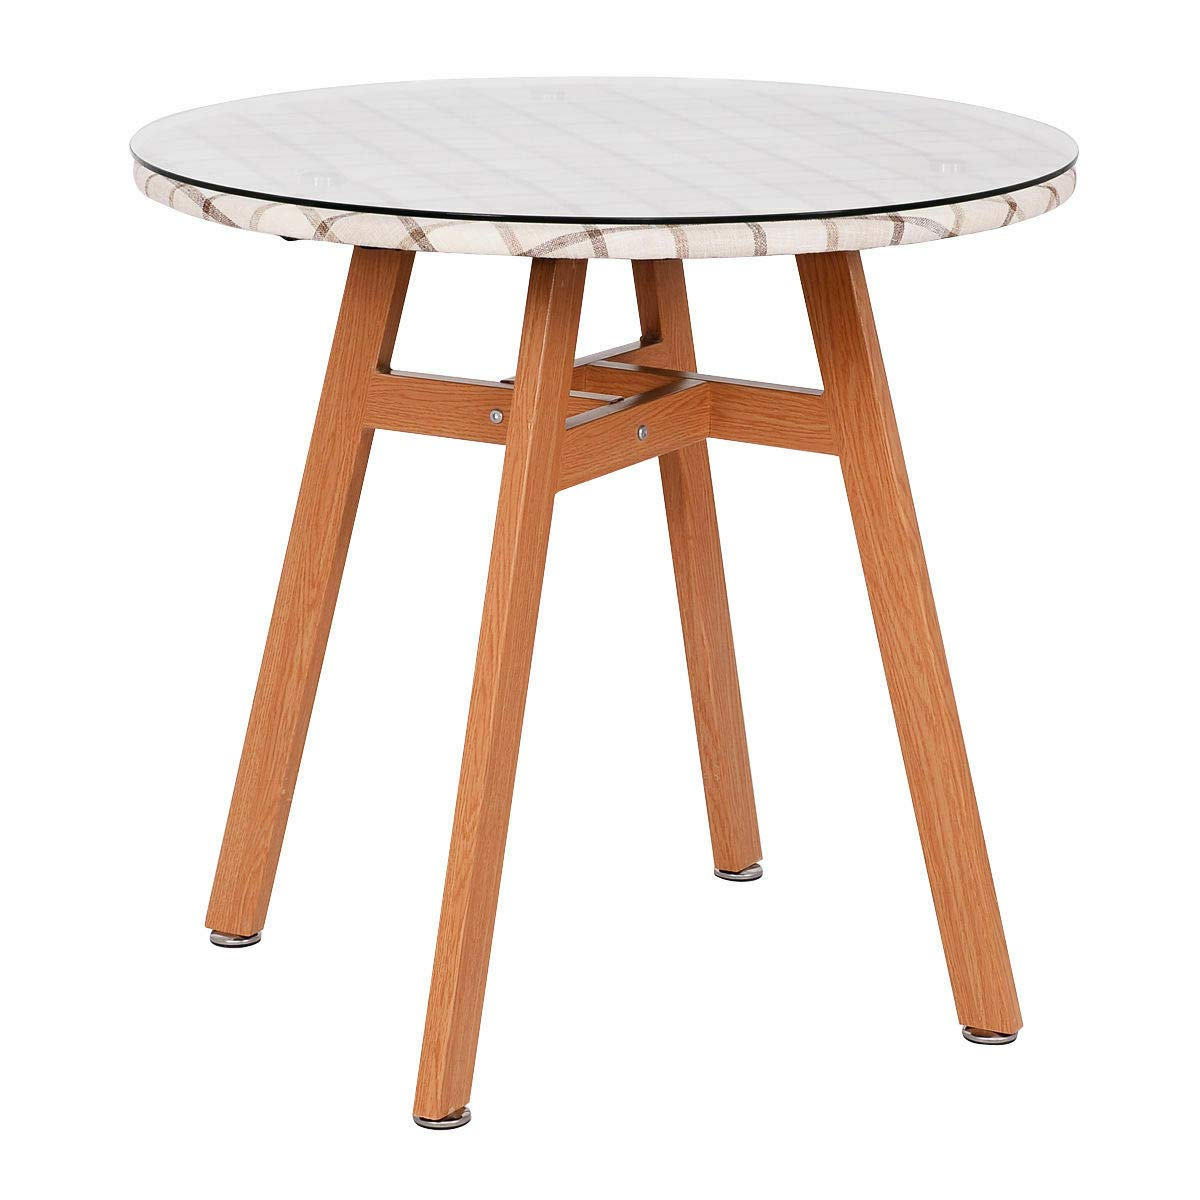 Eames Style Dining Tables With Chromed Leg And Tempered Glass Top within 2020 Giantex Round Dining Table Steel Frame Tempered Glass Top Home Decor  Kitchen Furniture